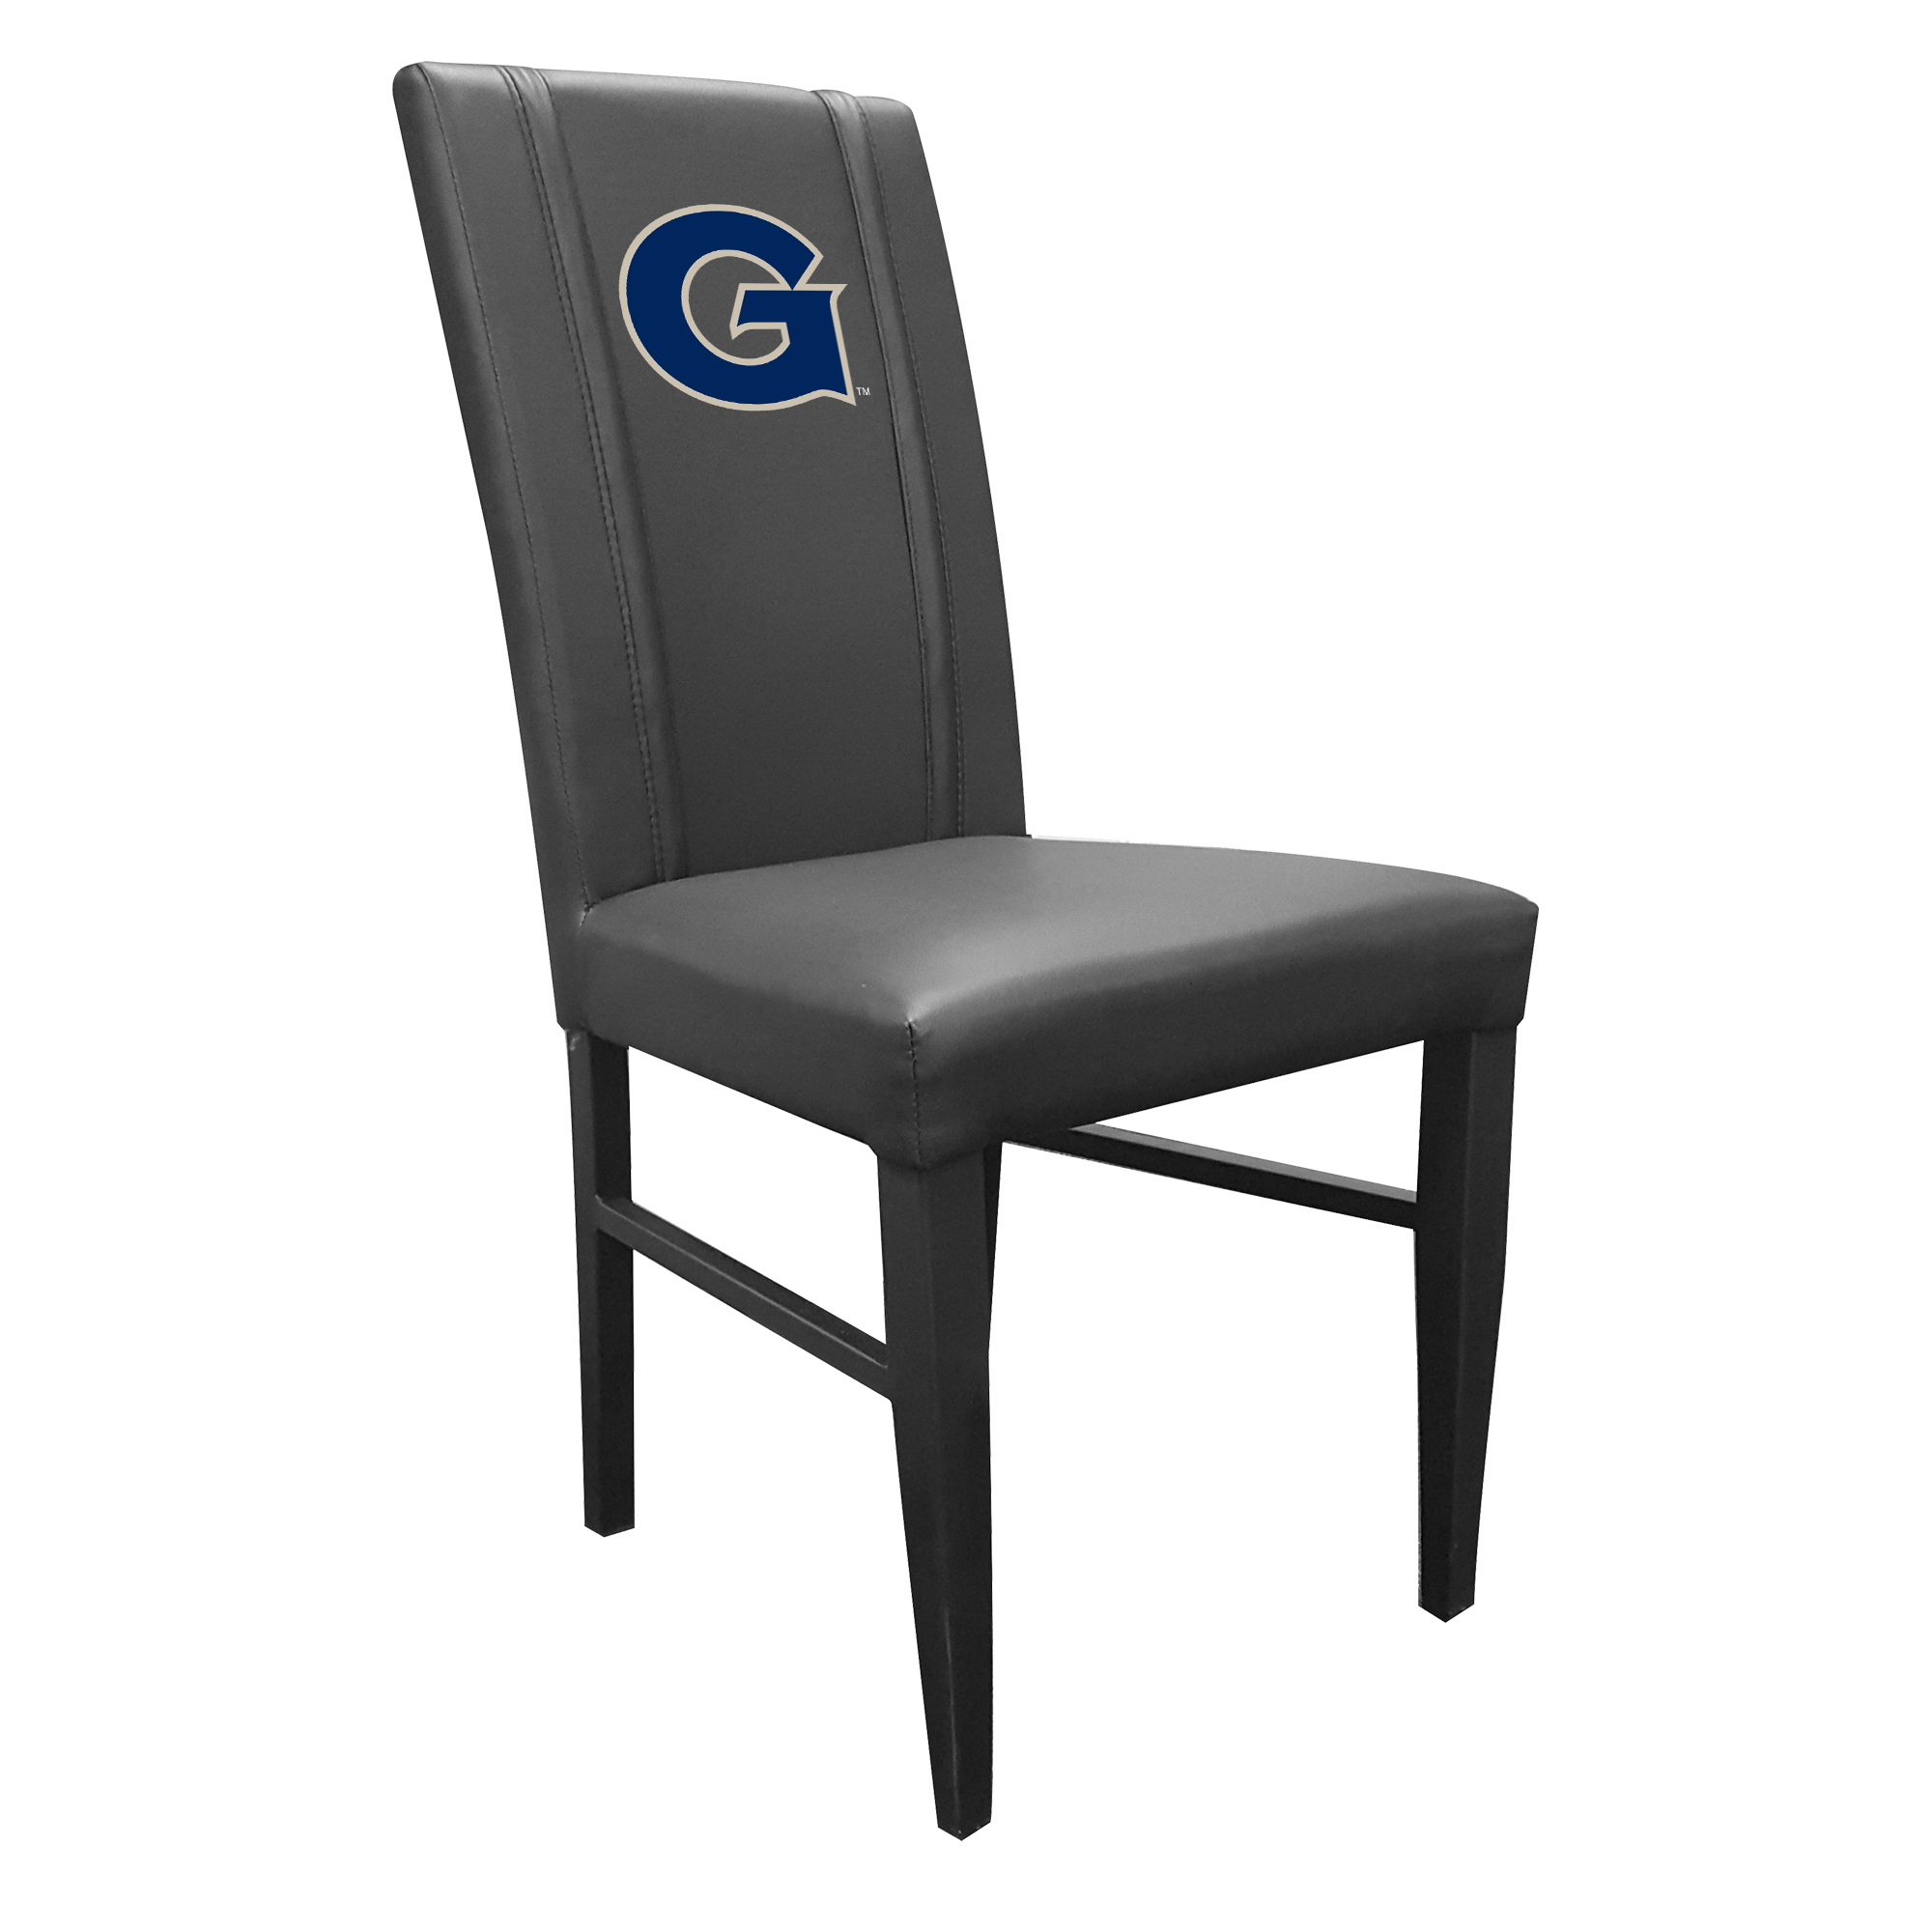 Side Chair 2000 with Georgetown Hoyas Primary